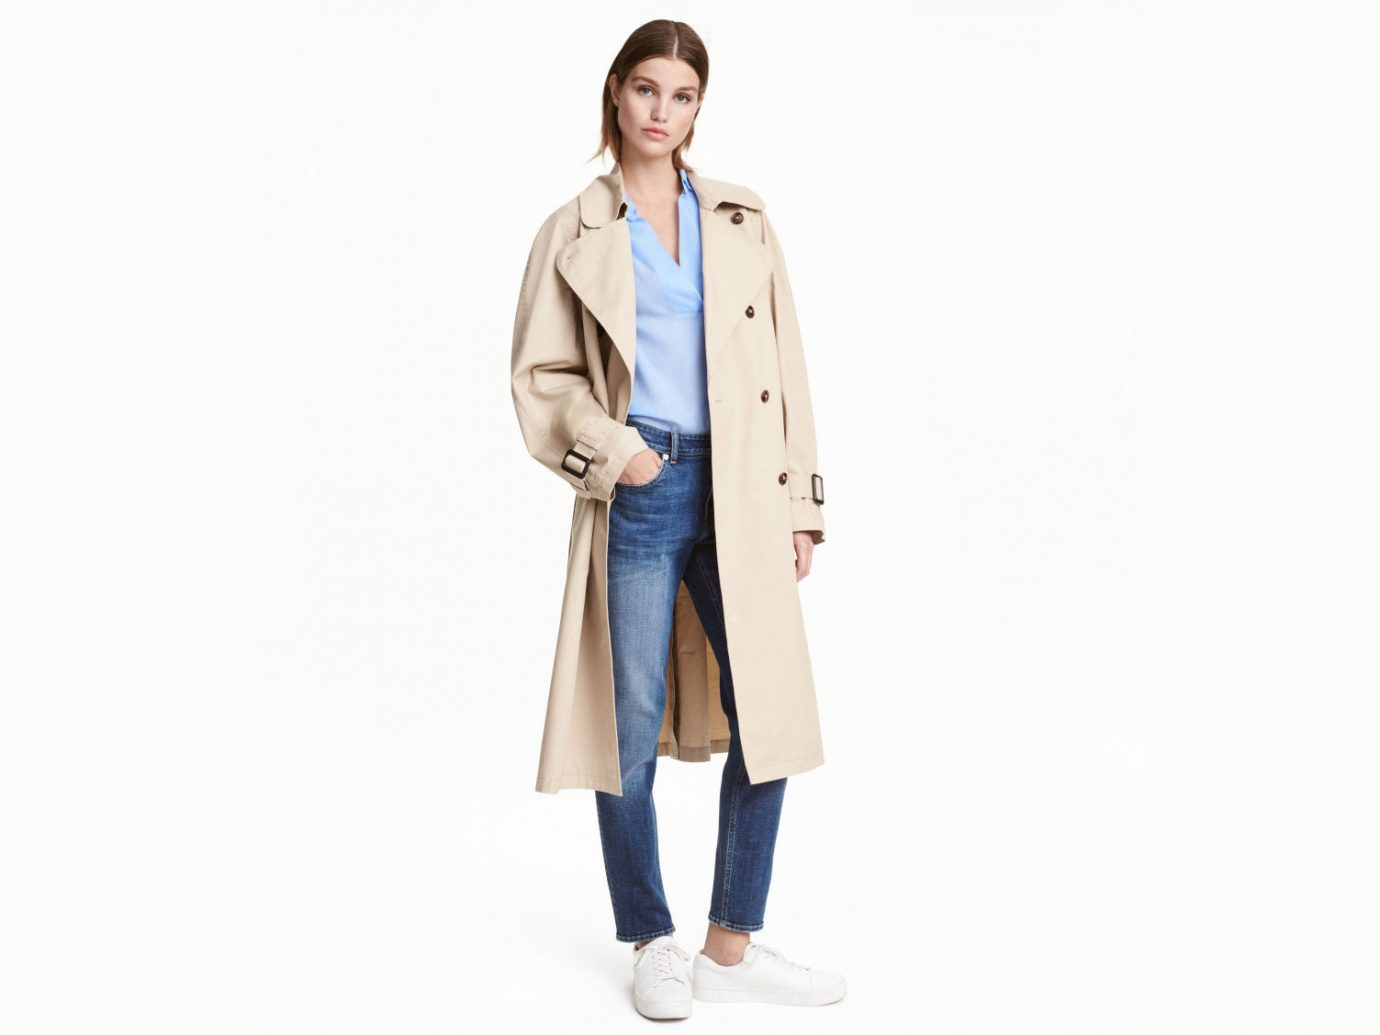 Style + Design clothing standing suit outerwear coat posing spring pattern jacket formal wear trench coat dressed